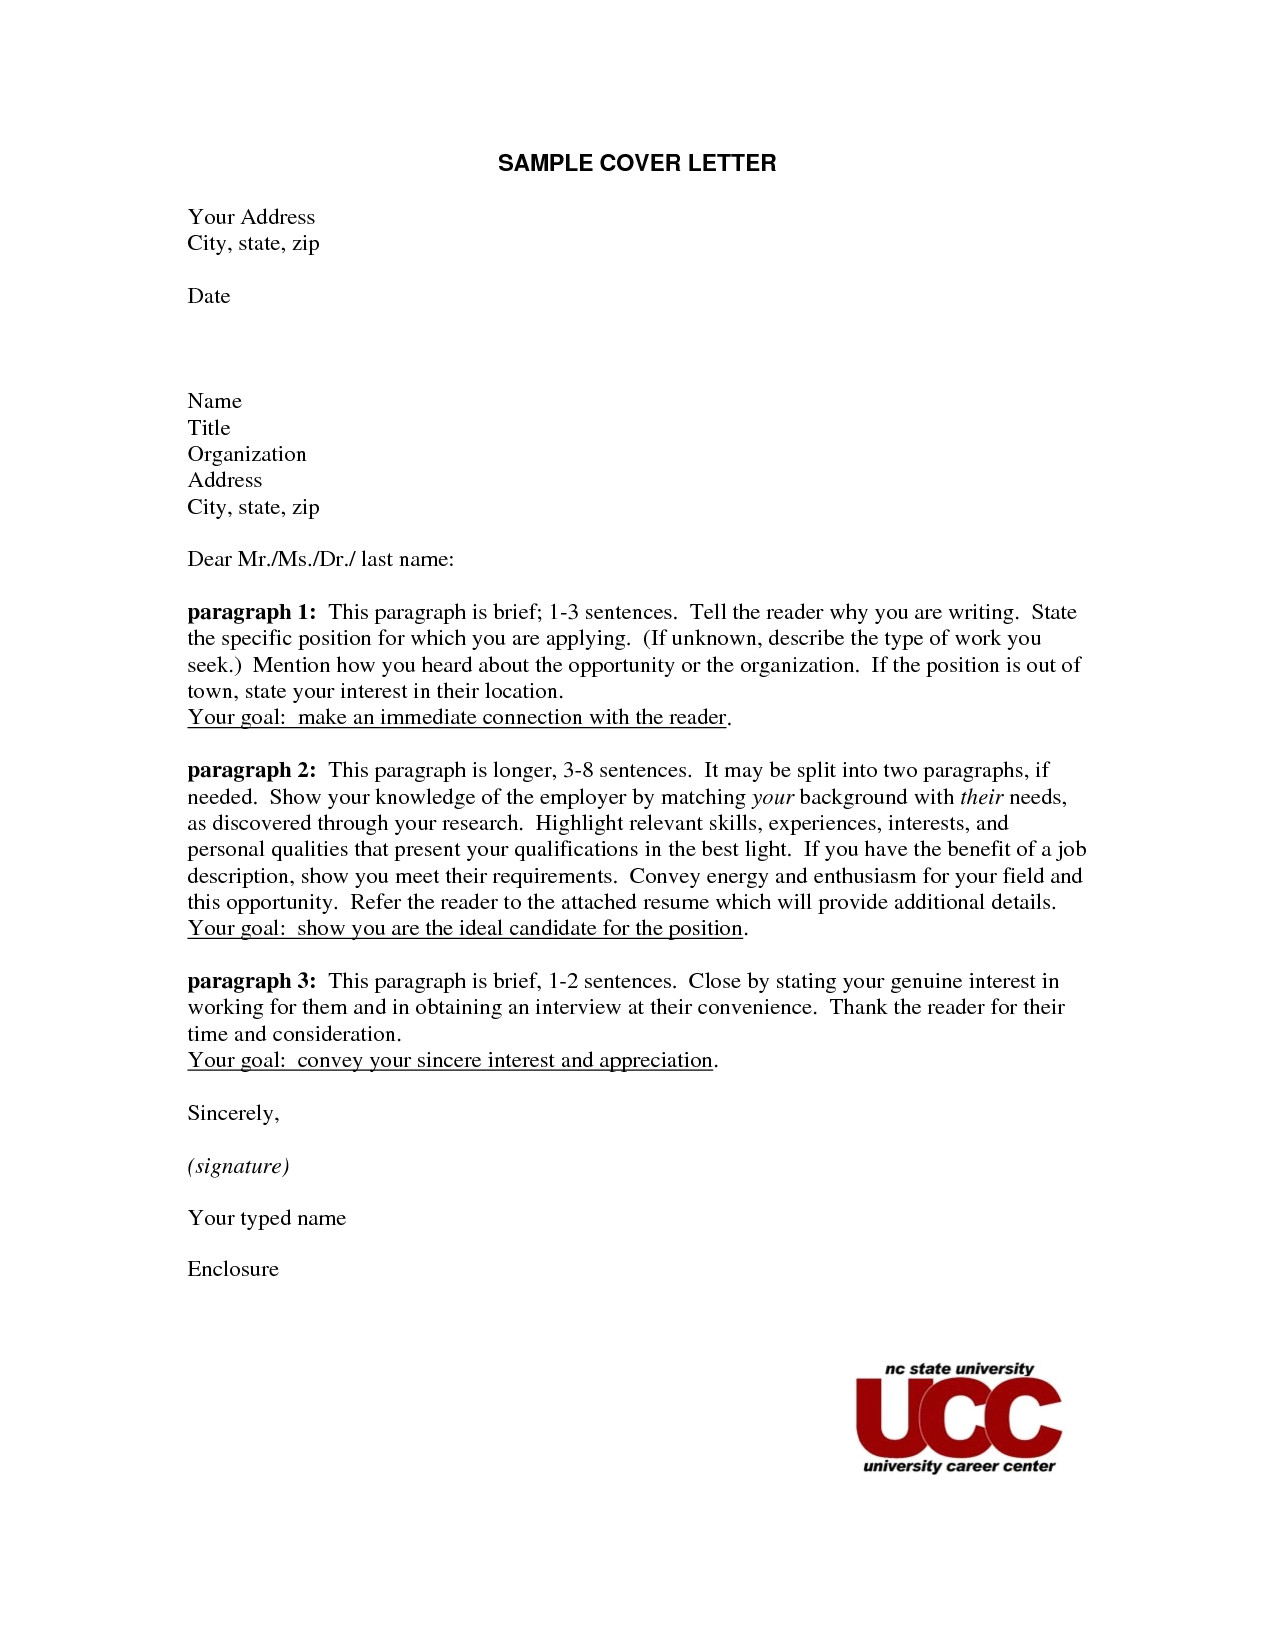 How to Write a Cover Letter When You're Currently Working | Work - blogger.com